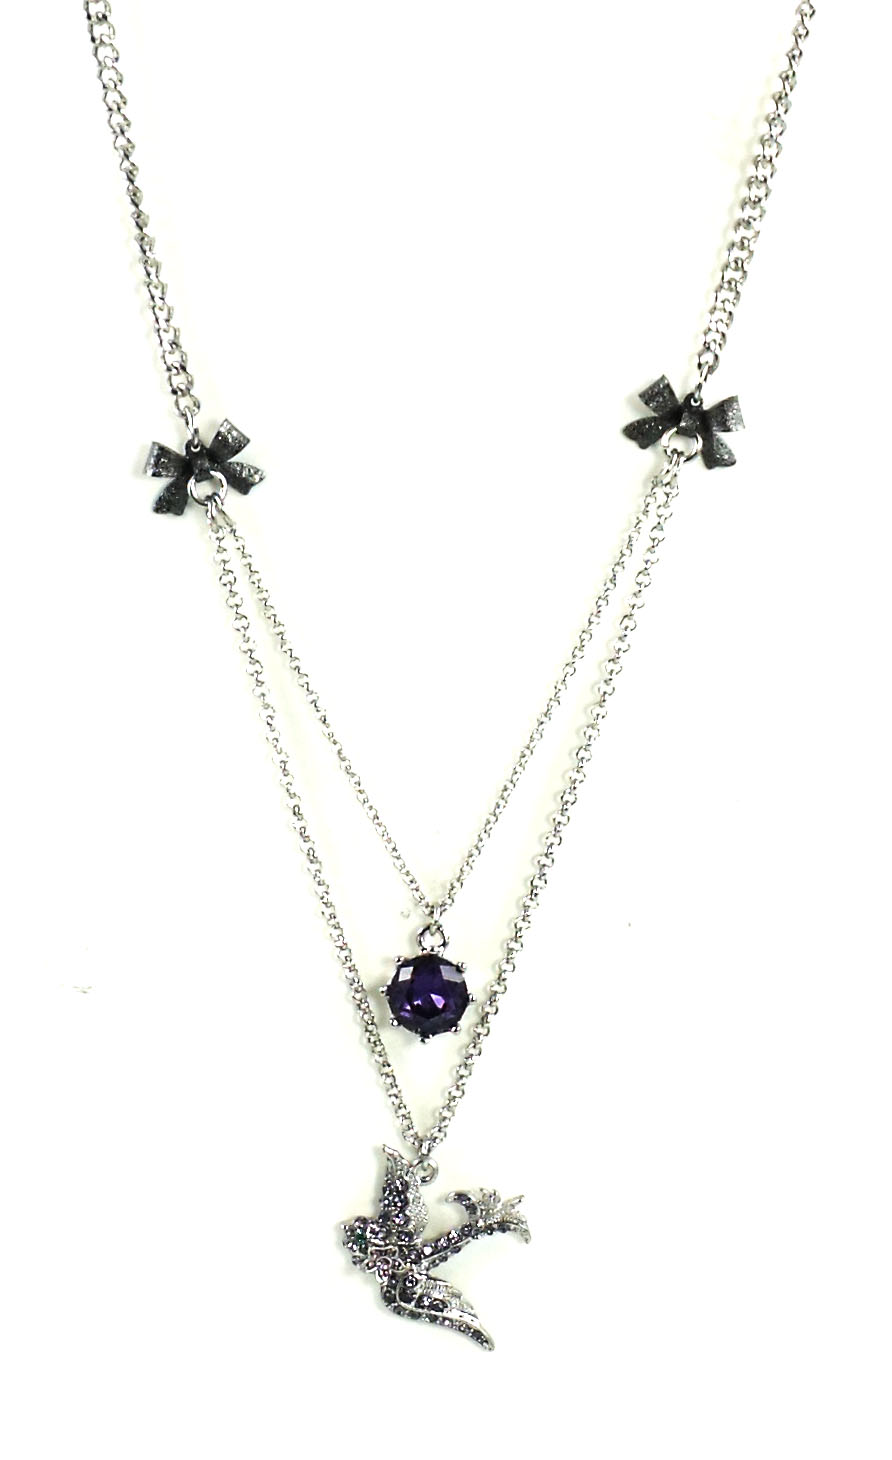 Betsey Johnson Jewelry ICONIC AMETHYST Snake Bird Duo Necklace